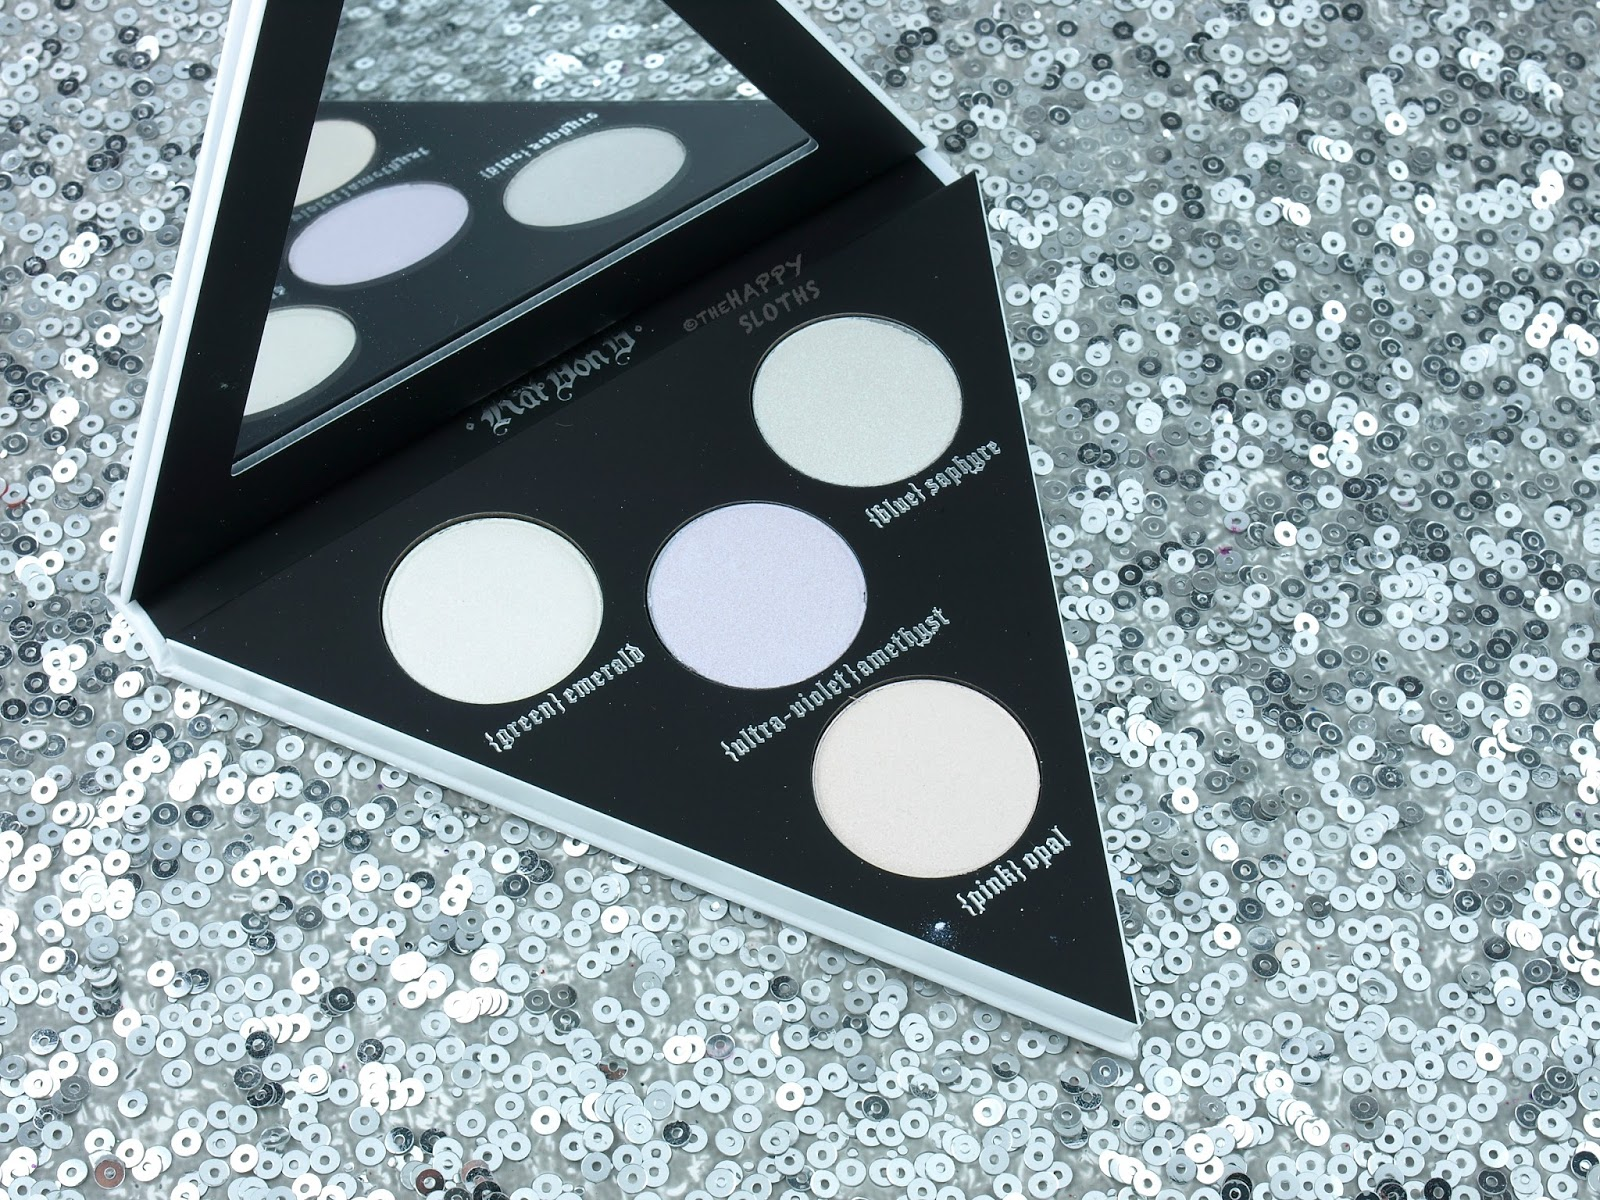 Kat Von D Alchemist Holographic Palette: Review and Swatches